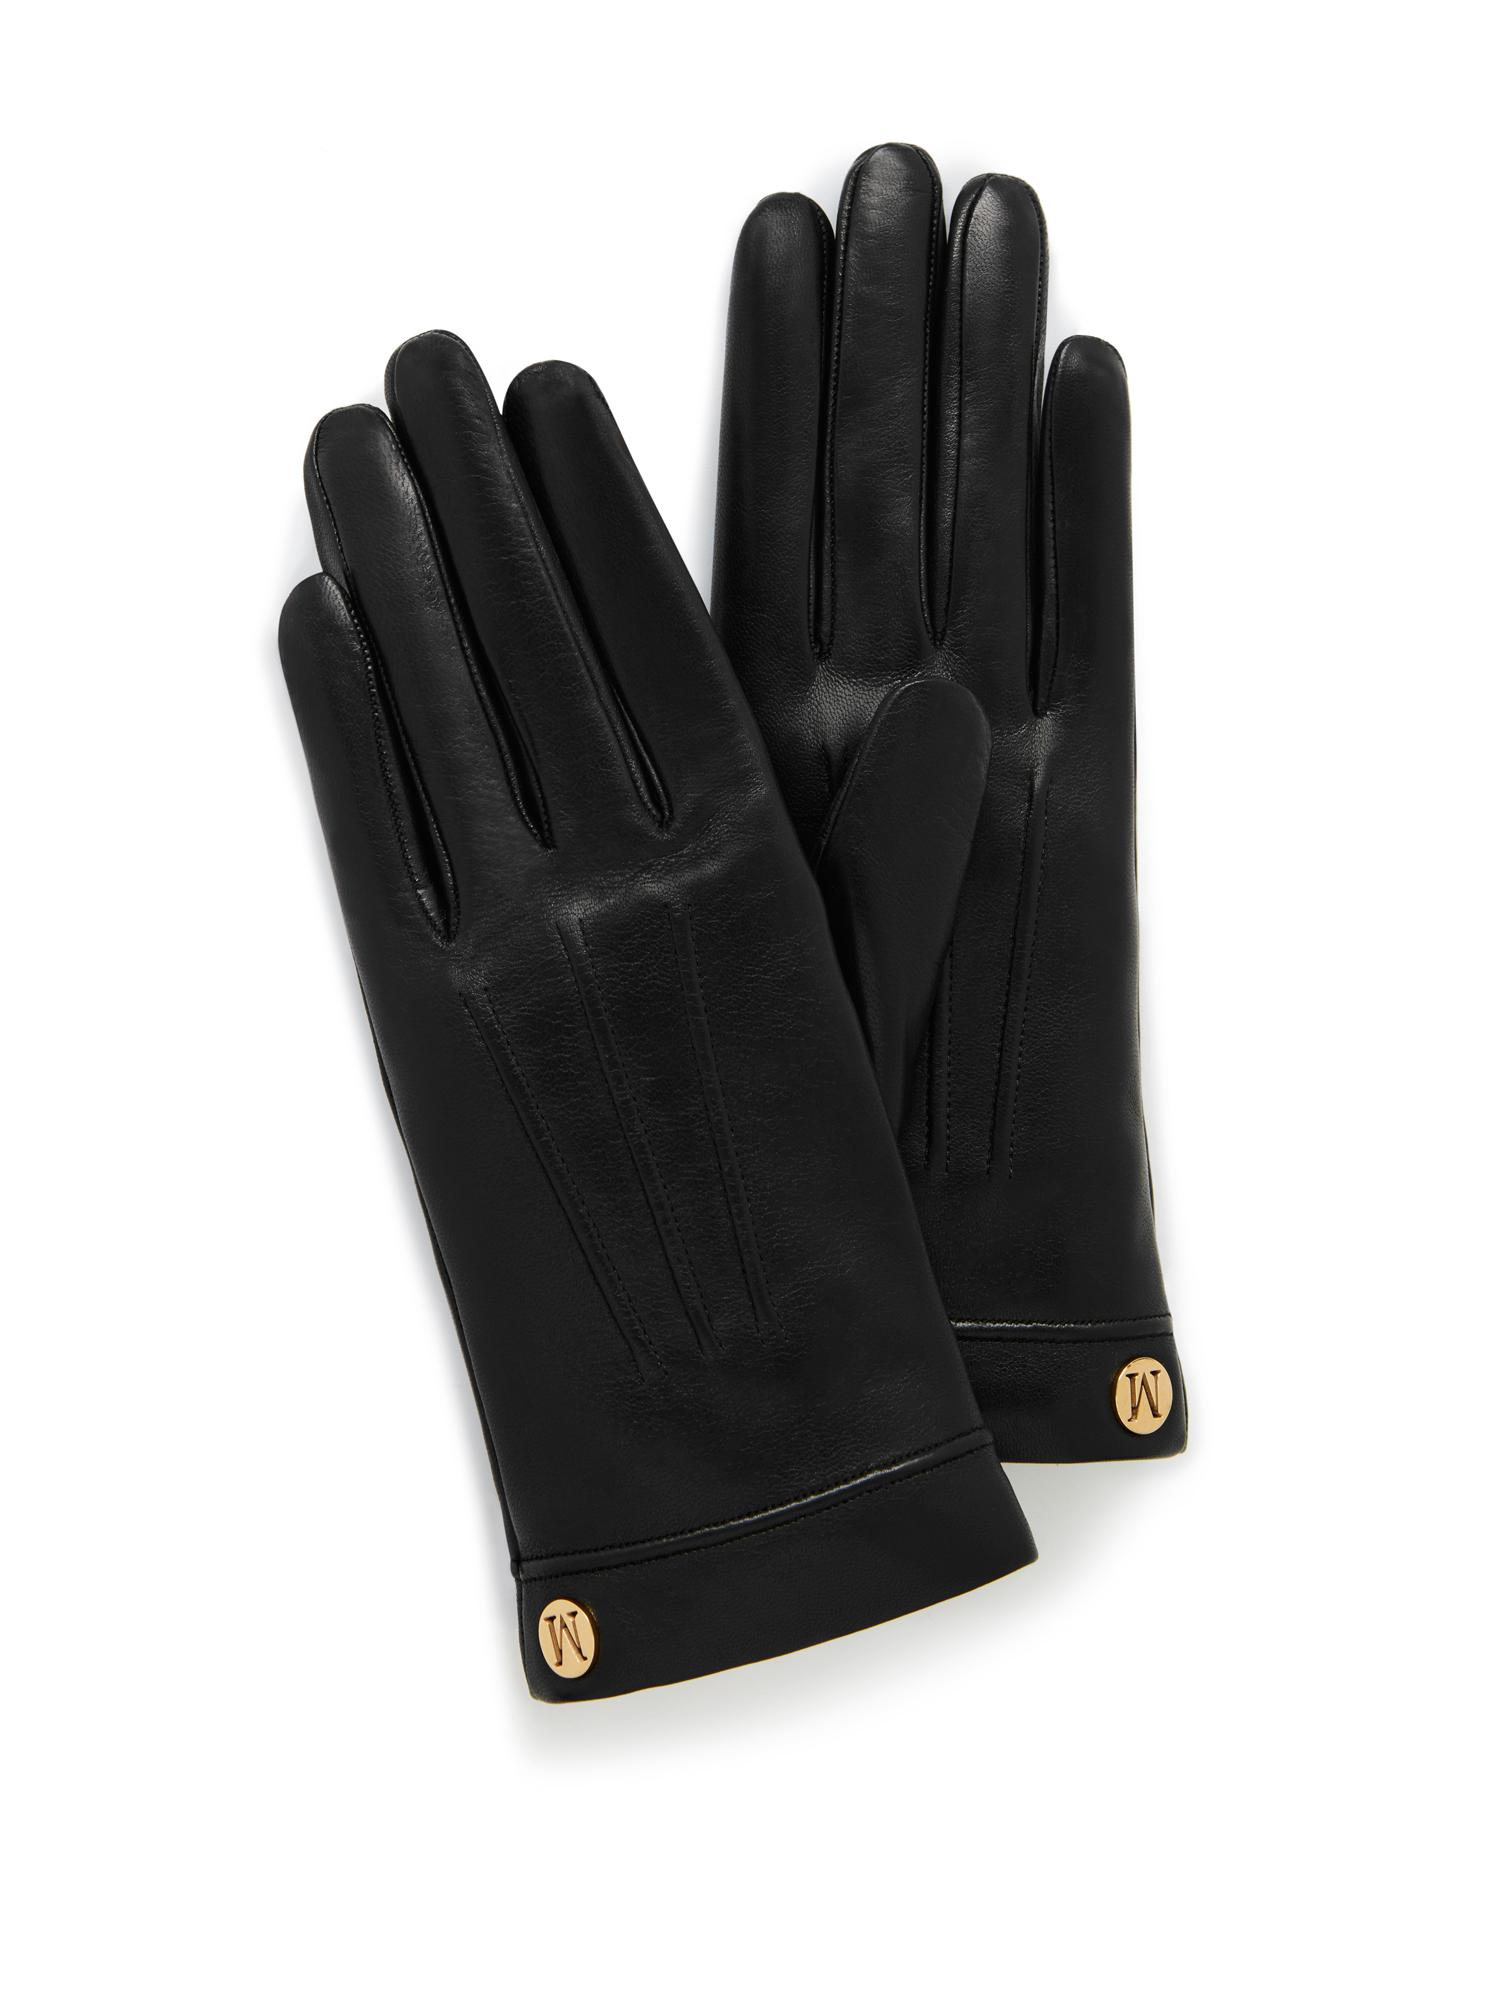 Ladies leather gloves designer - Mulberry Soft Nappa Leather Gloves